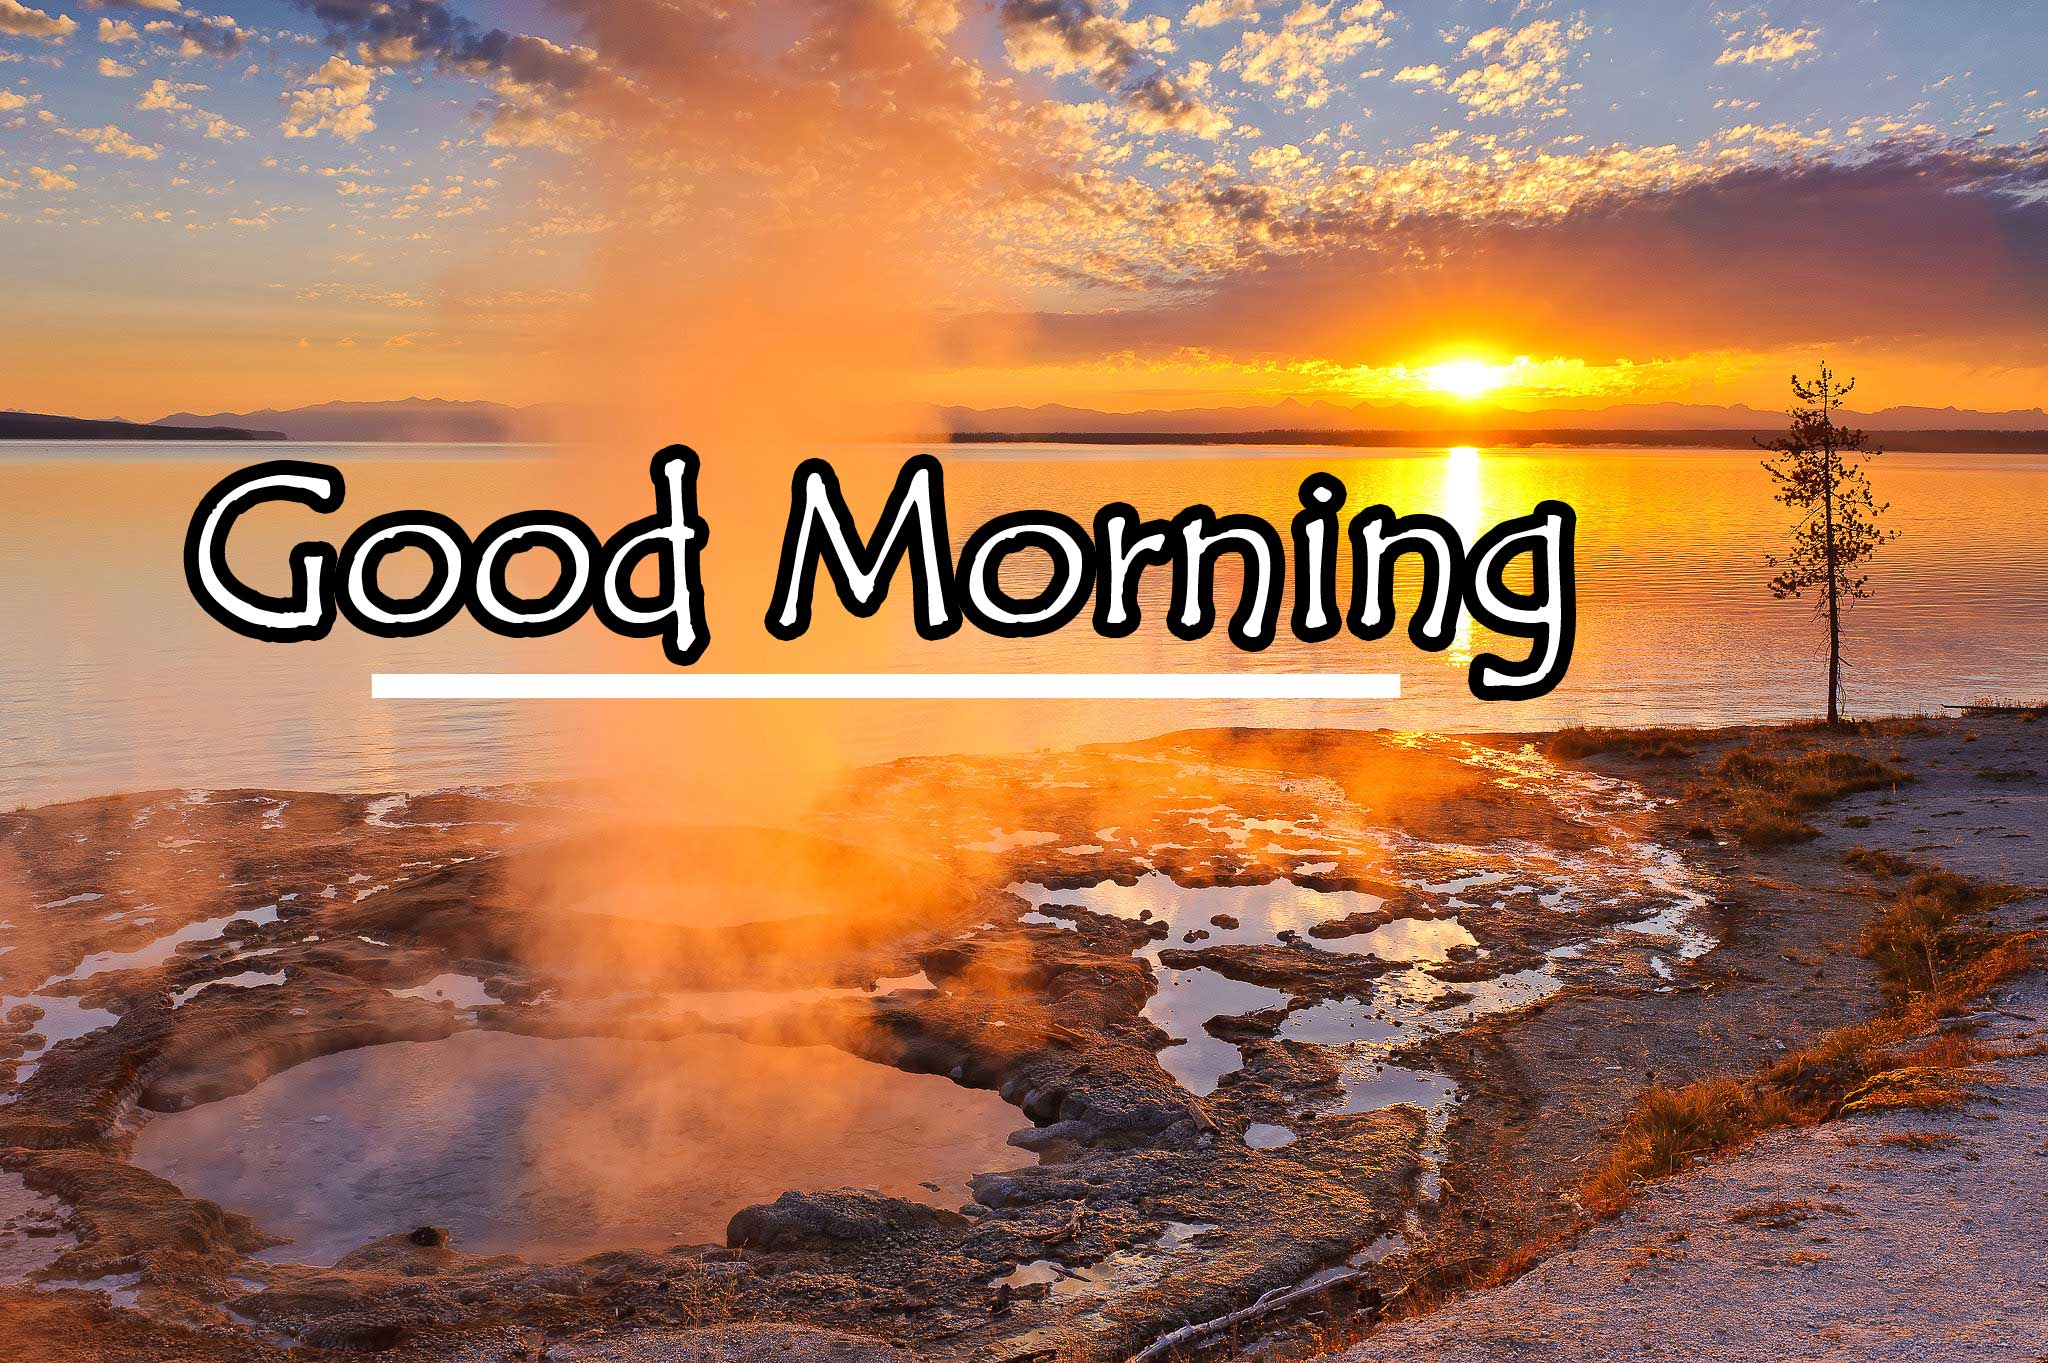 Good Morning Wishes With Sunrise Pics Download